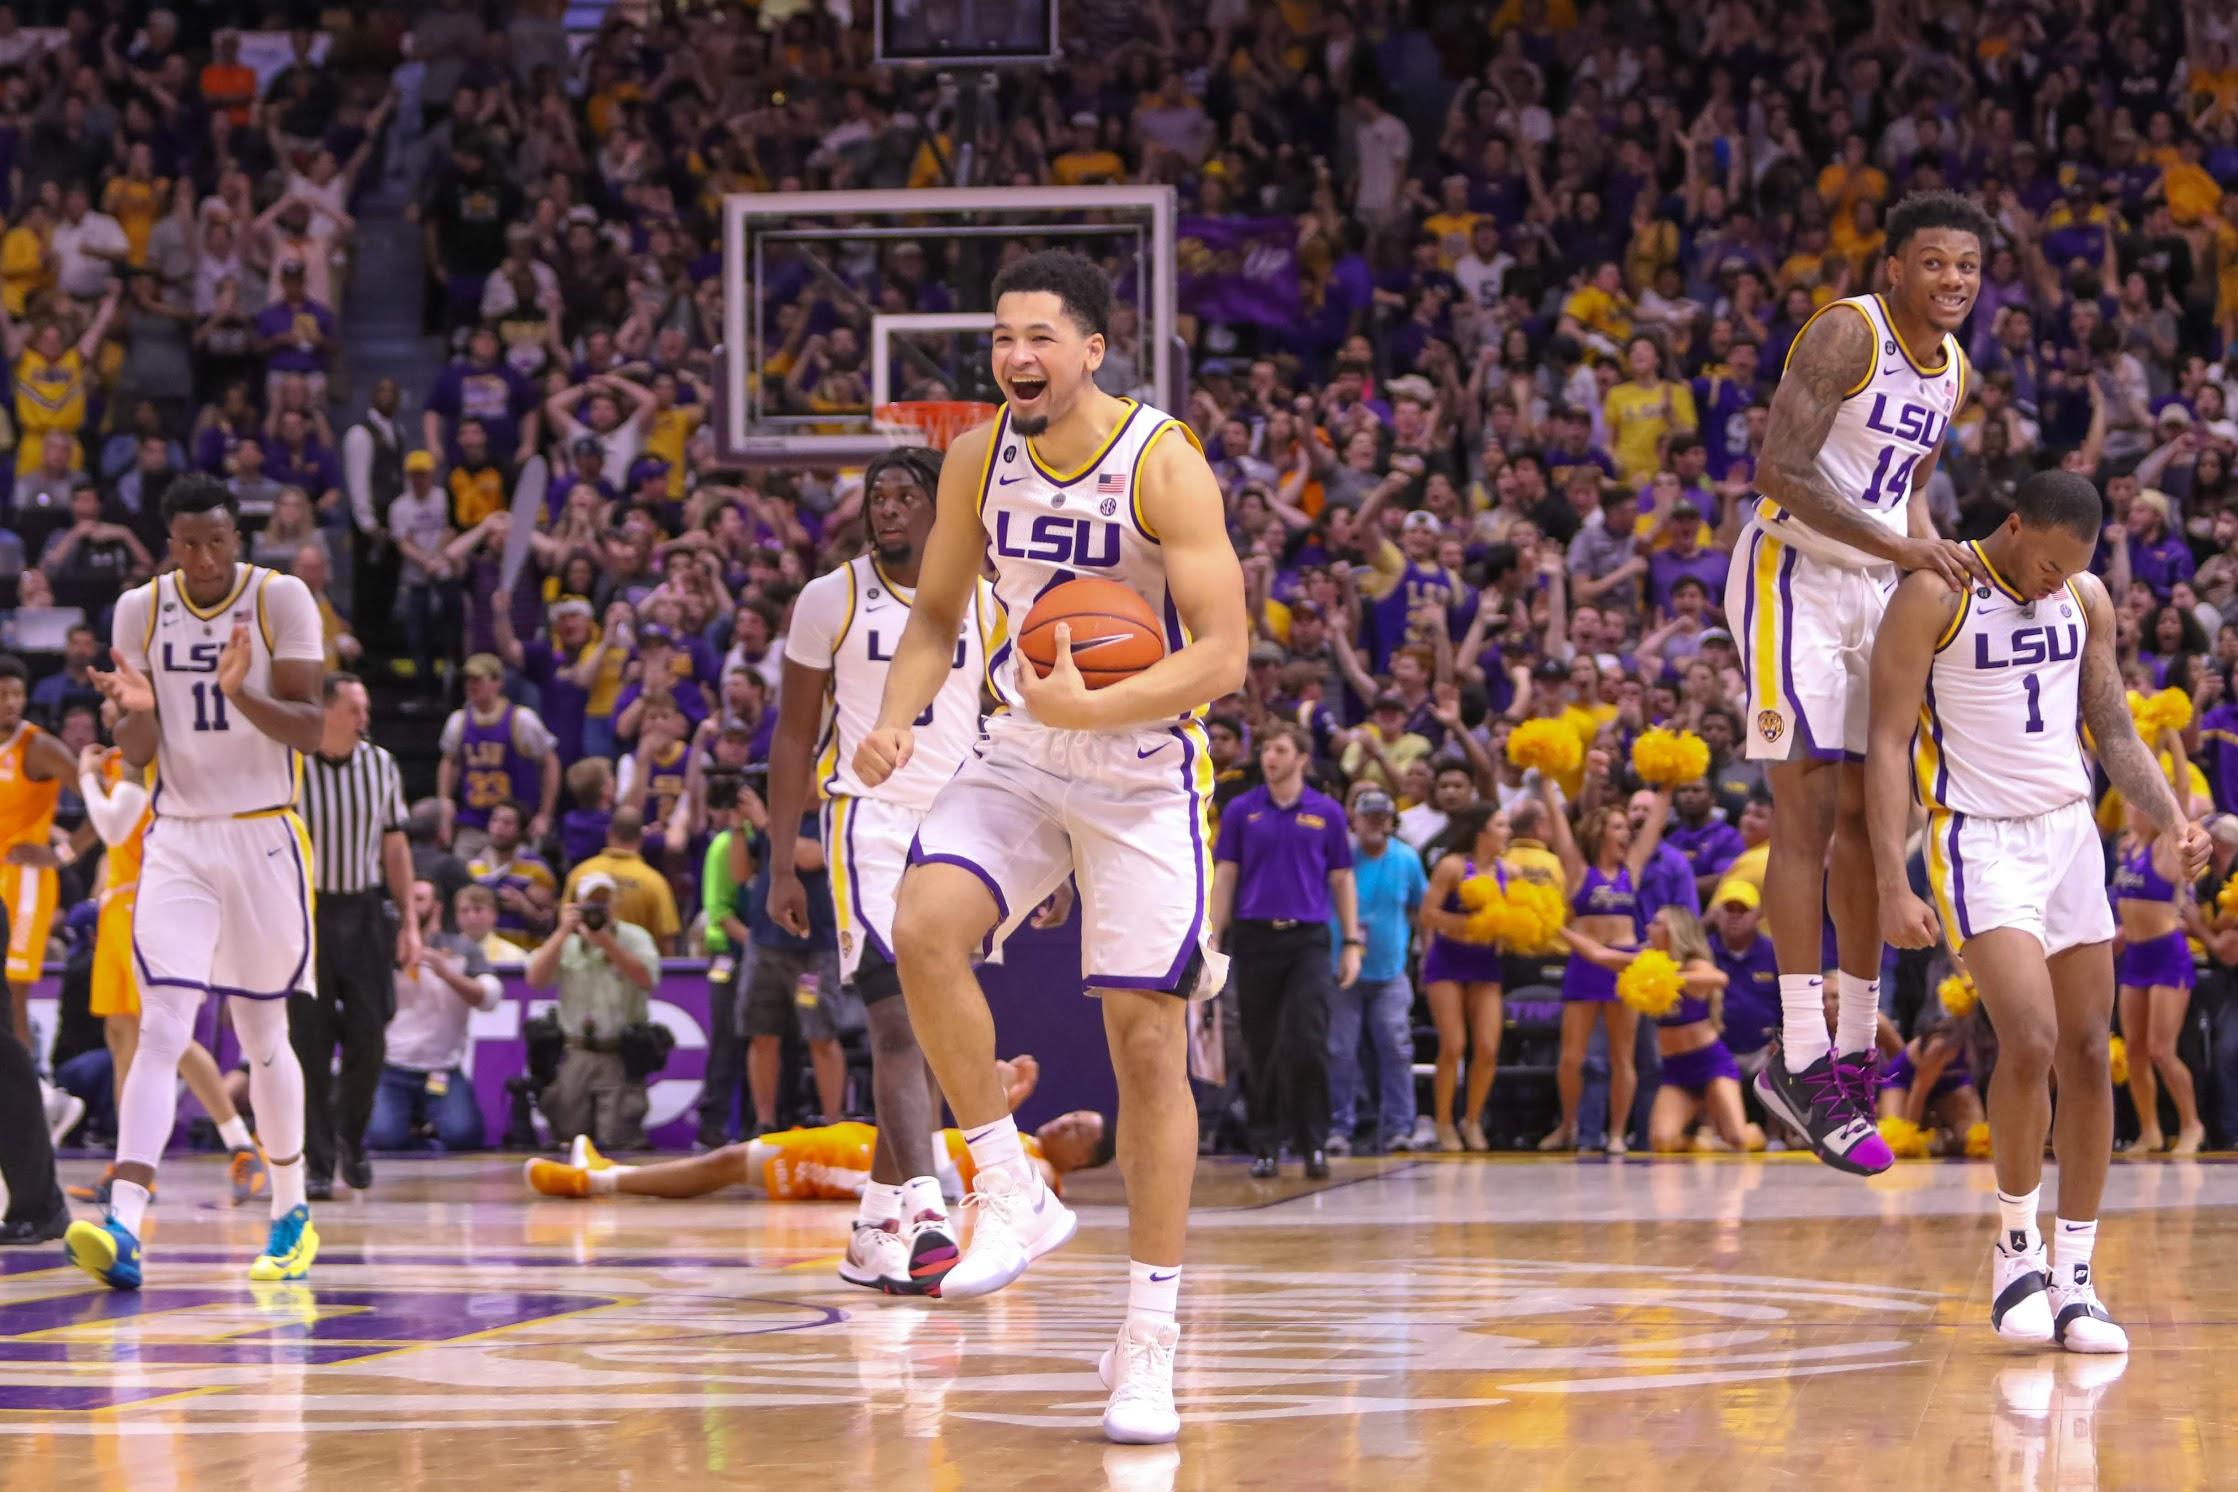 Highlights from LSU's 82-80 win over Tennessee